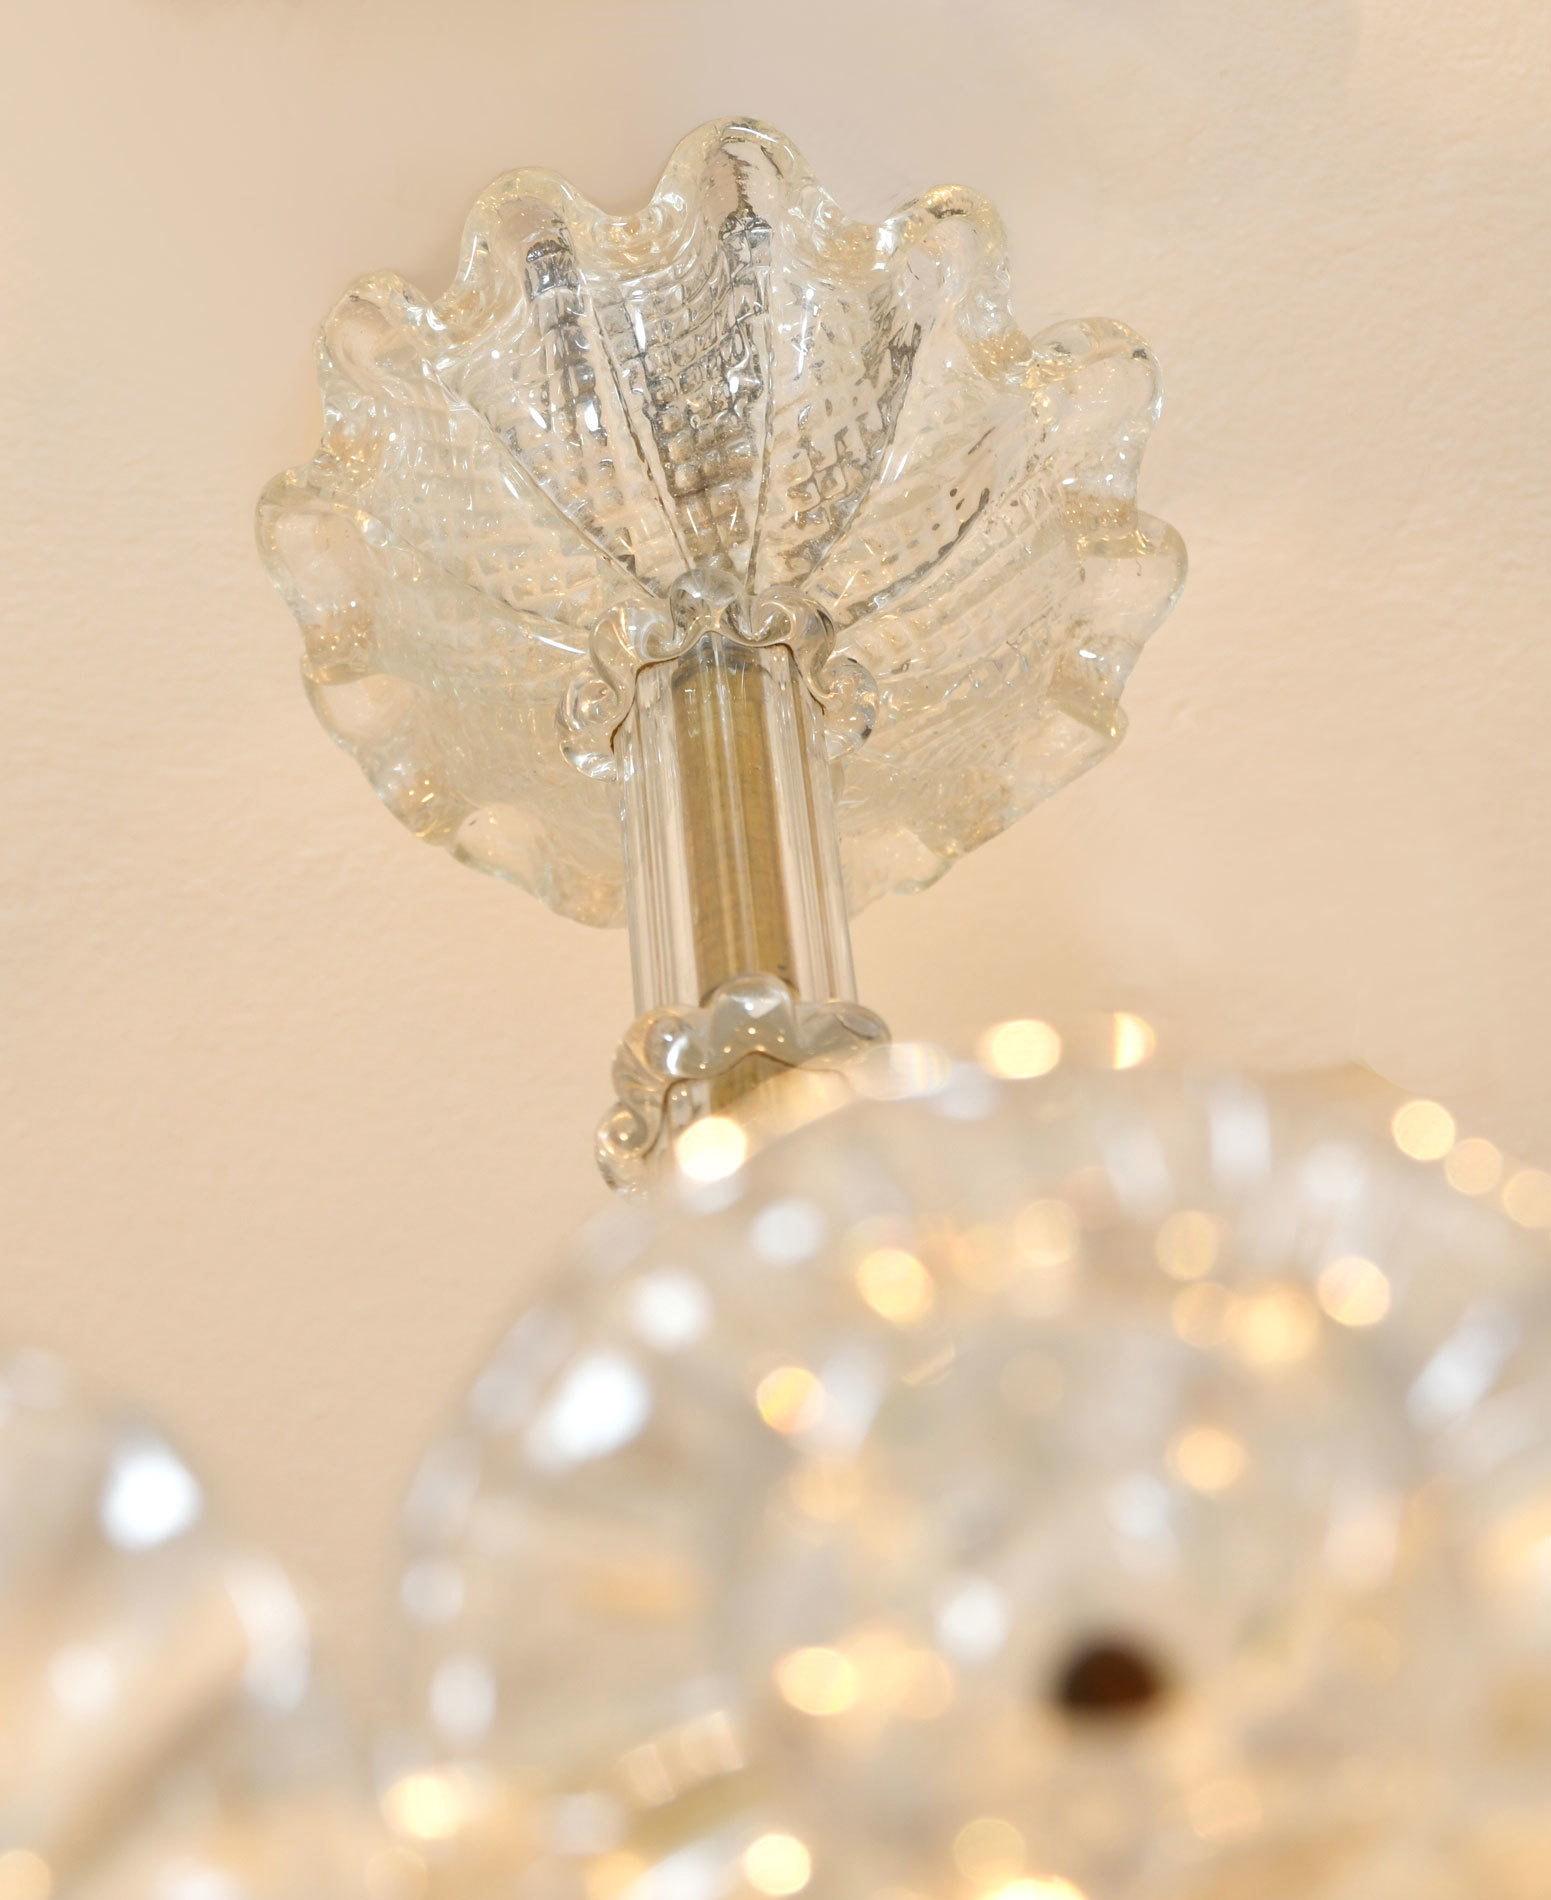 The image for Murano Glass Chandelier By Barovier 02